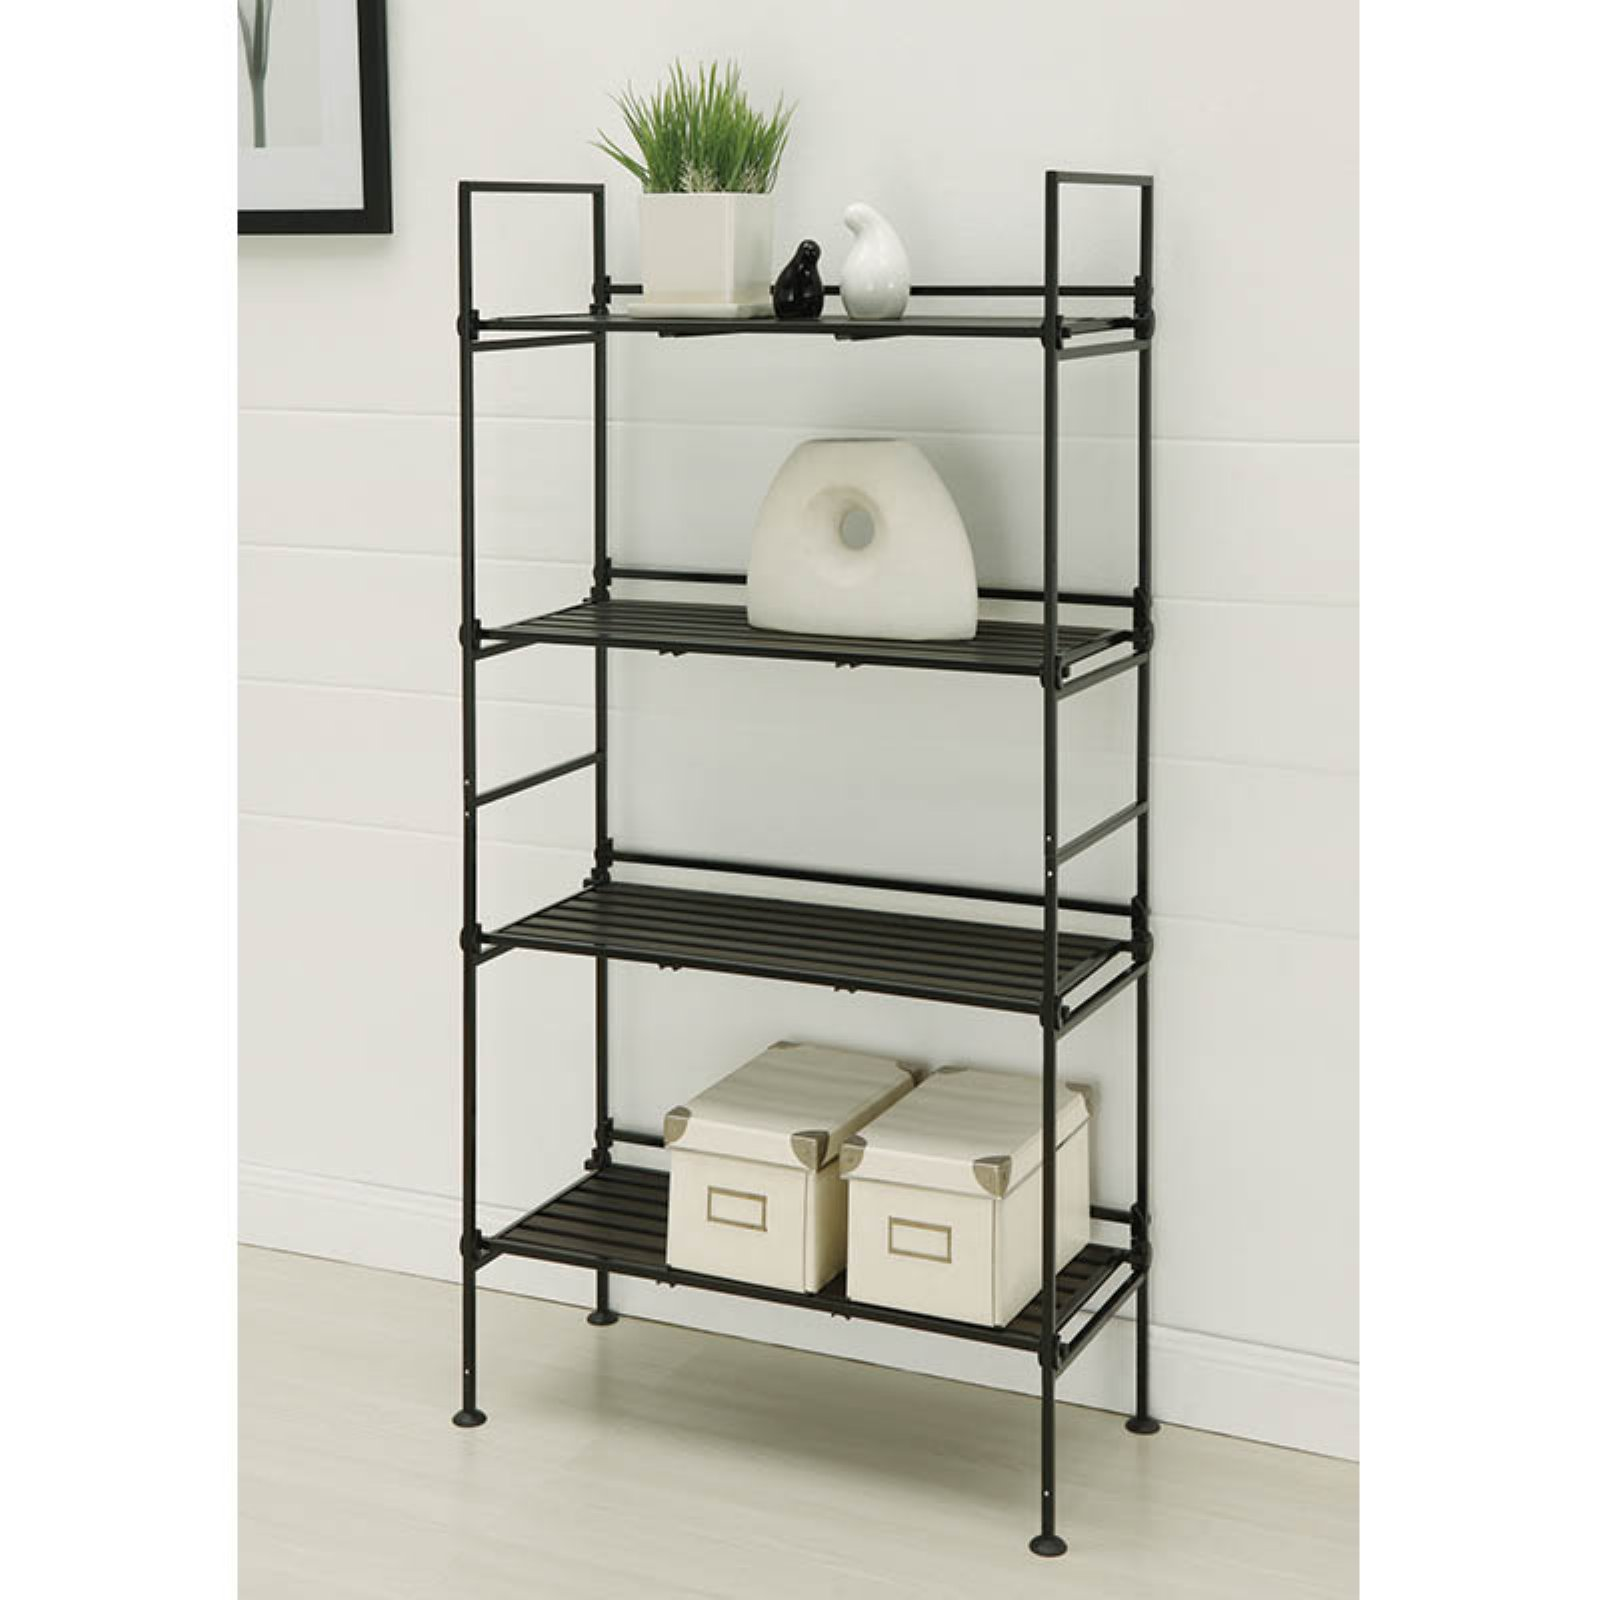 4 Tier Shelf - Resin